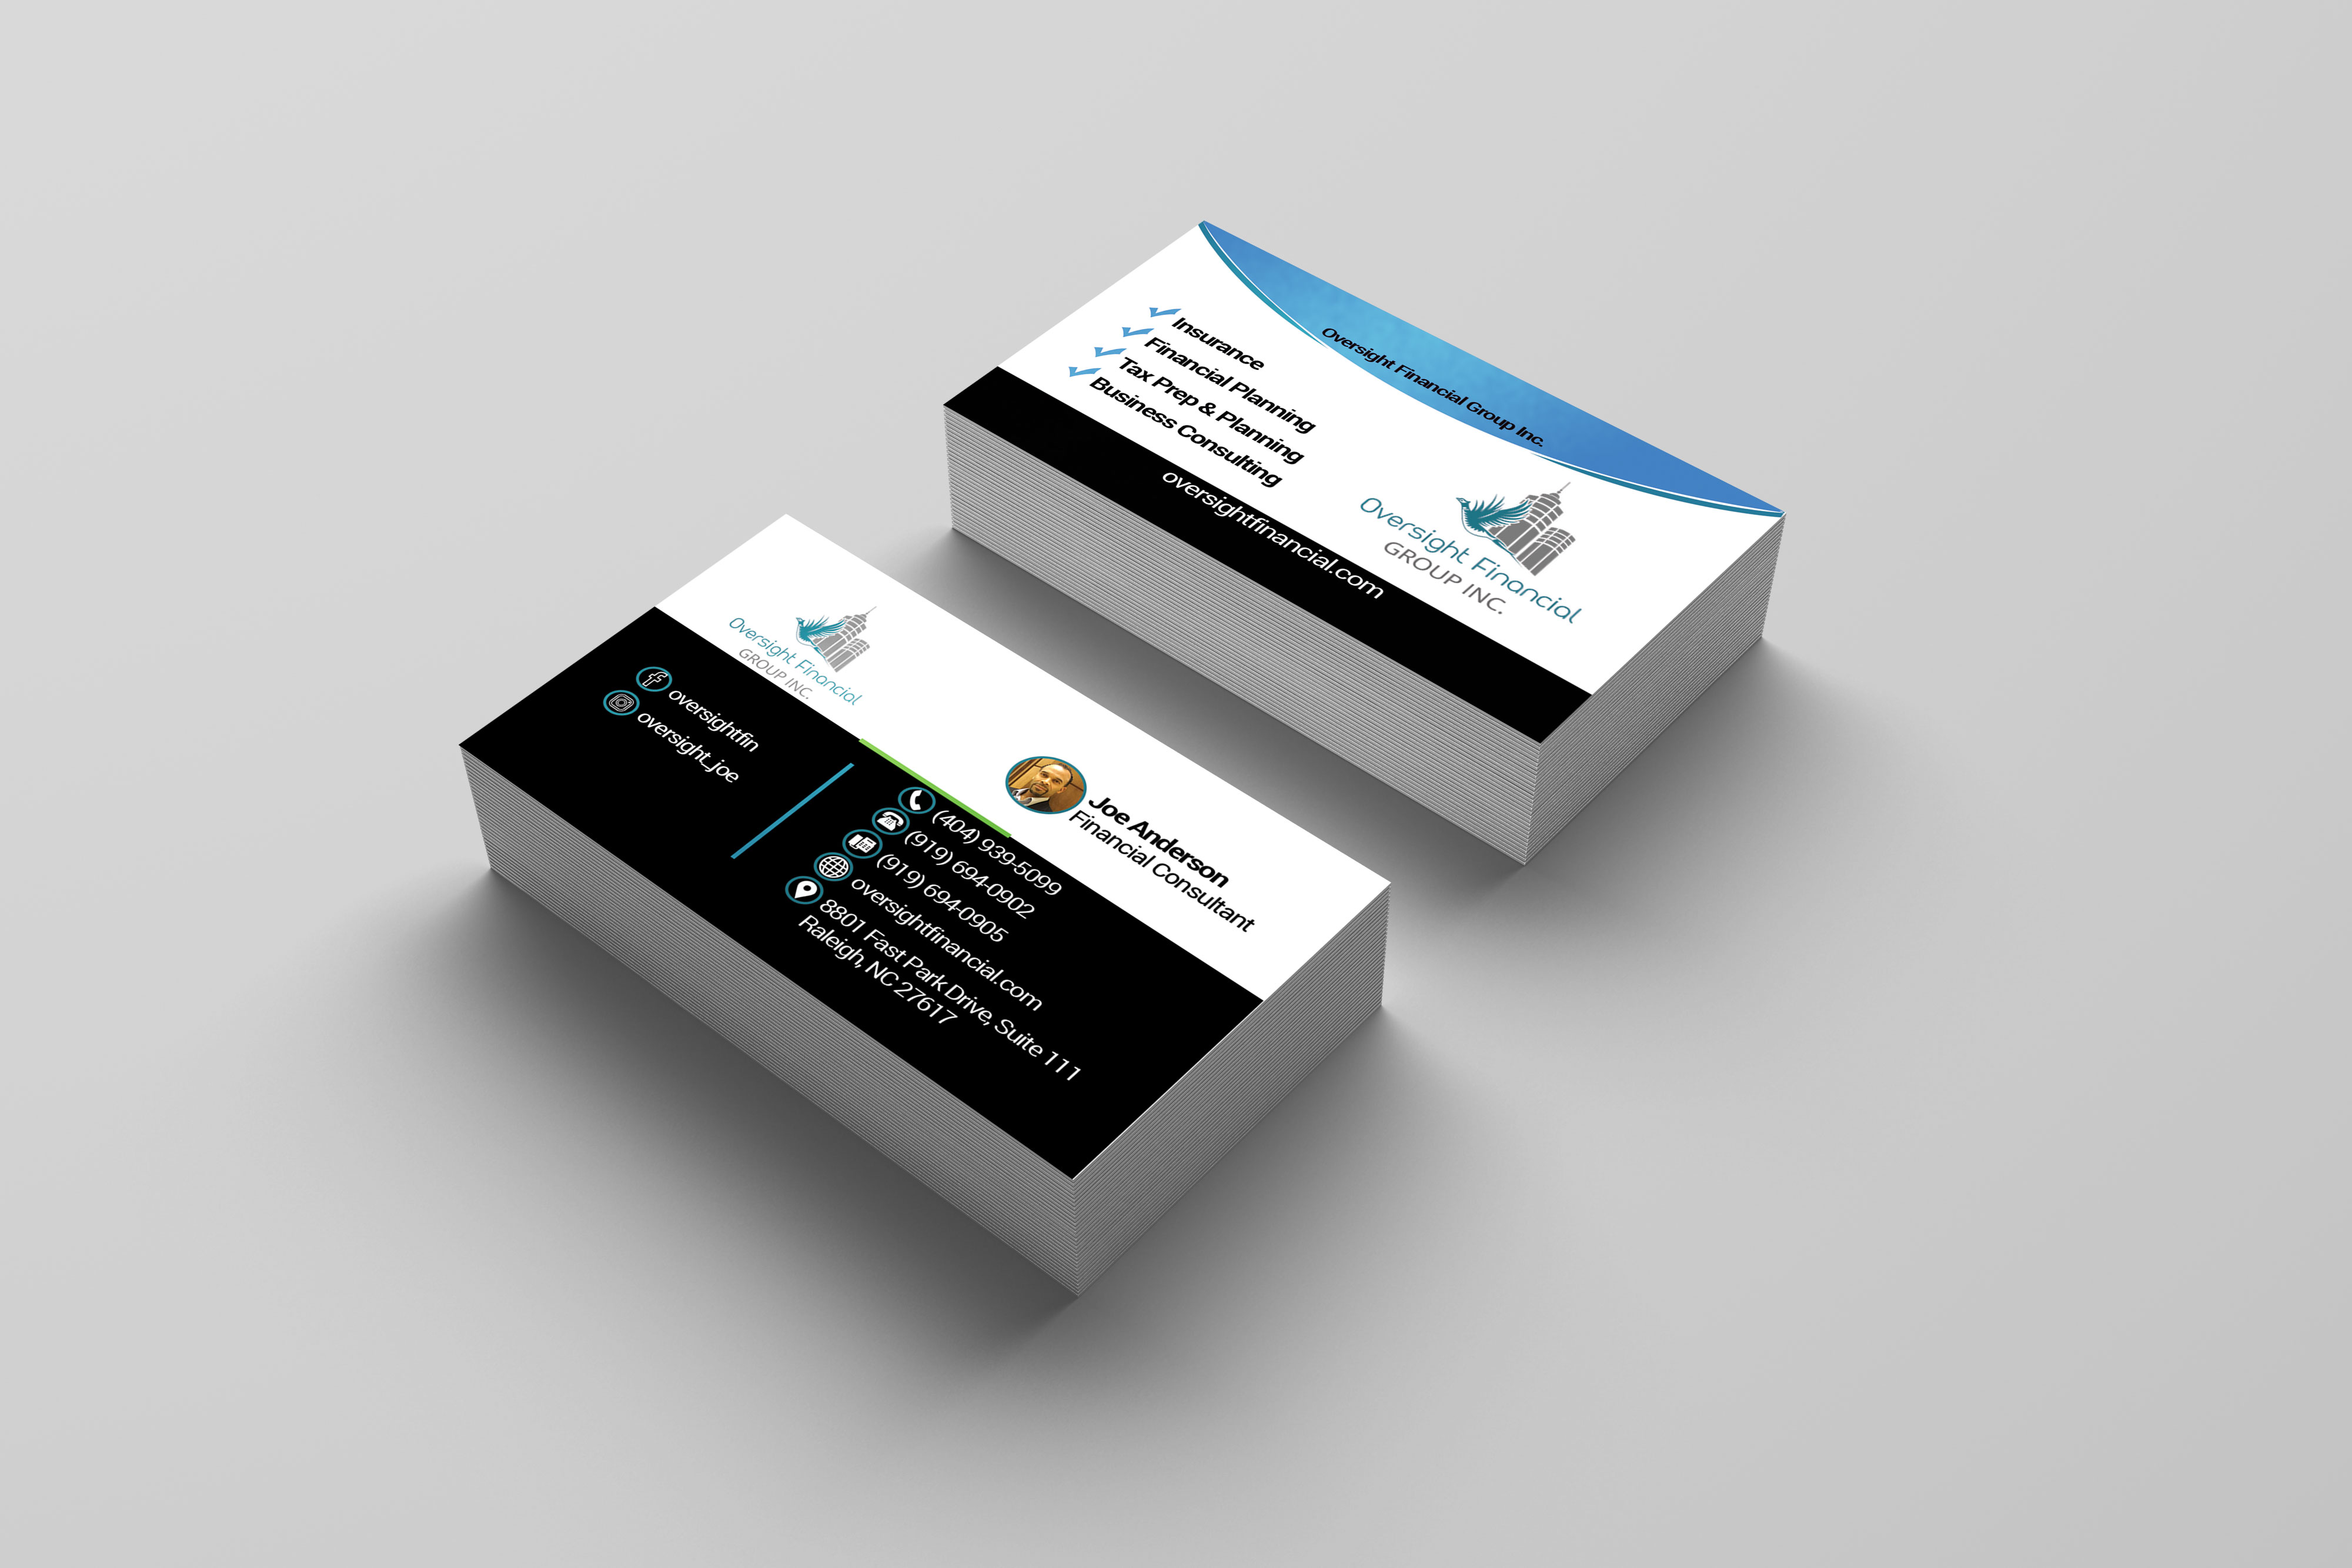 i will design professional double side business card within 24